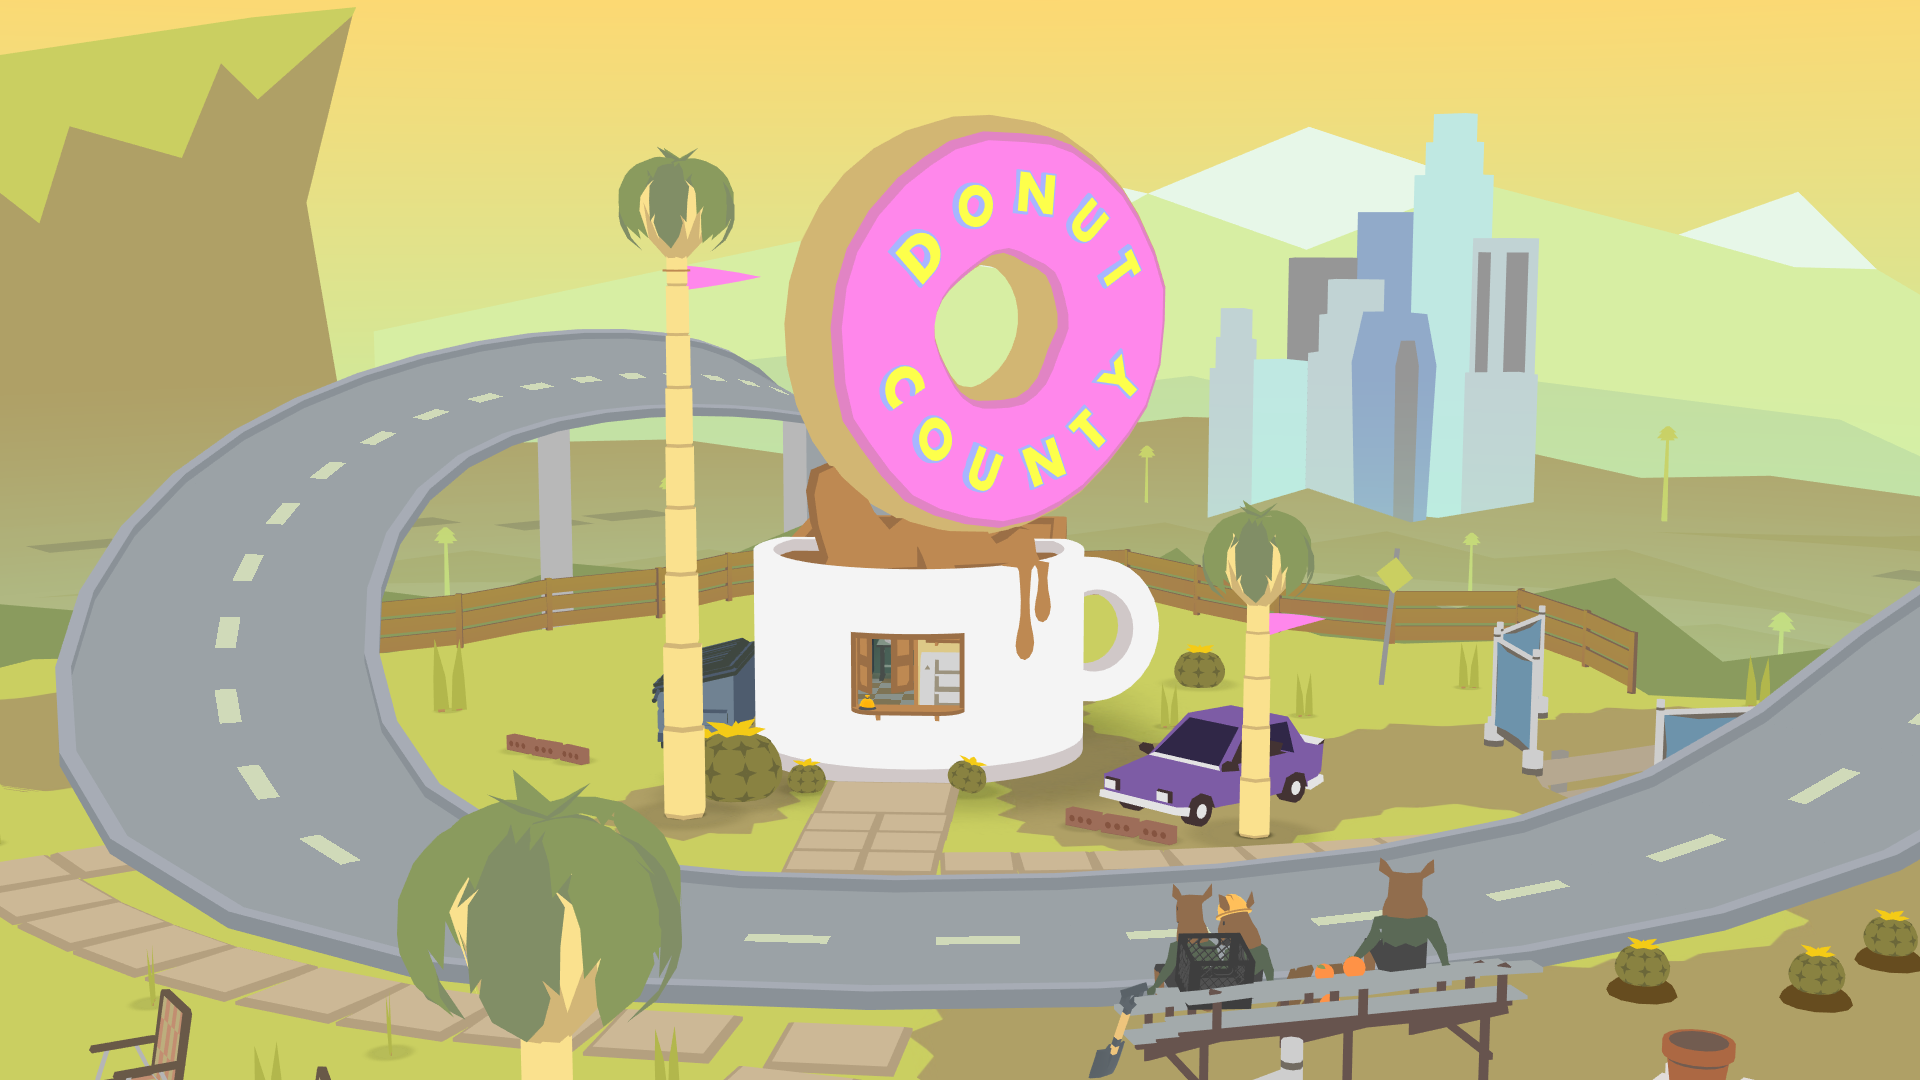 ROBLOX STUDIO APK CHROMEBOOK - Donut County